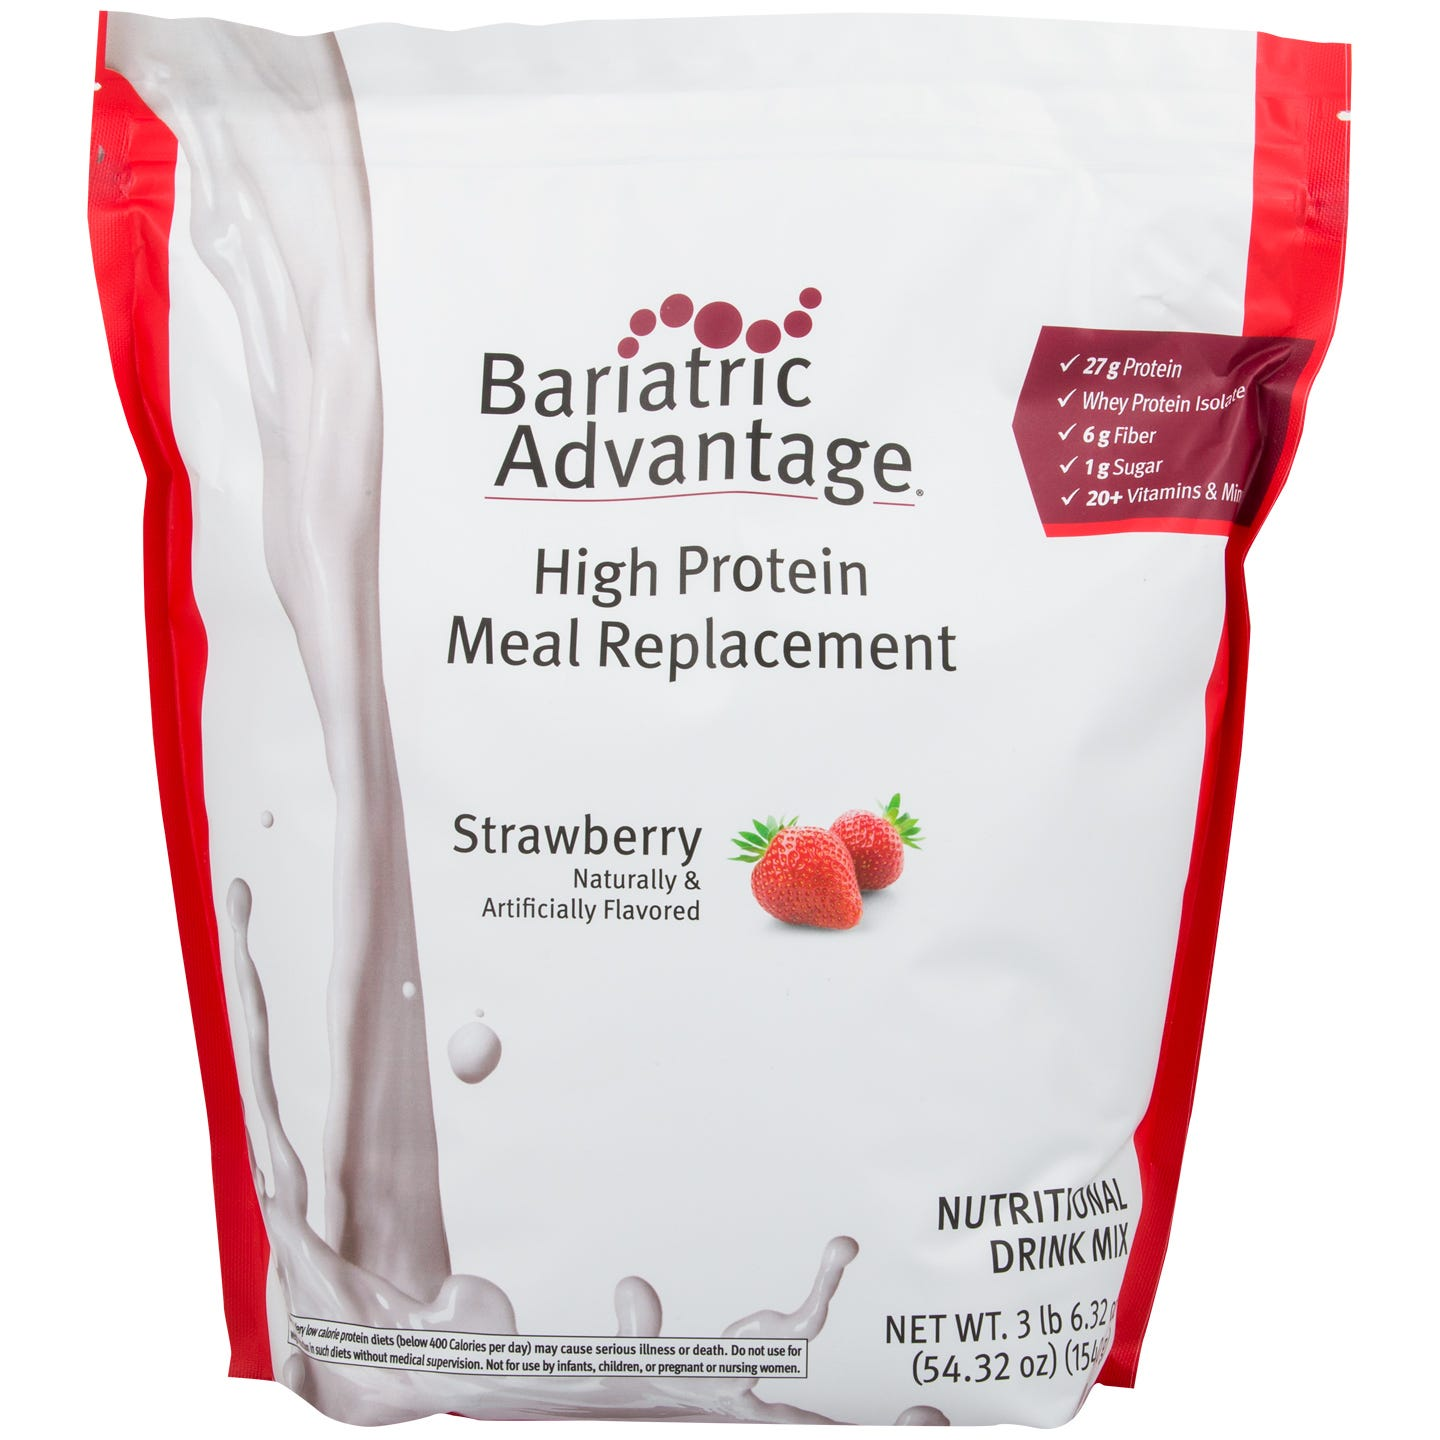 Bariatric Advantage High Protein Meal Replacement, Strawberry (54oz)